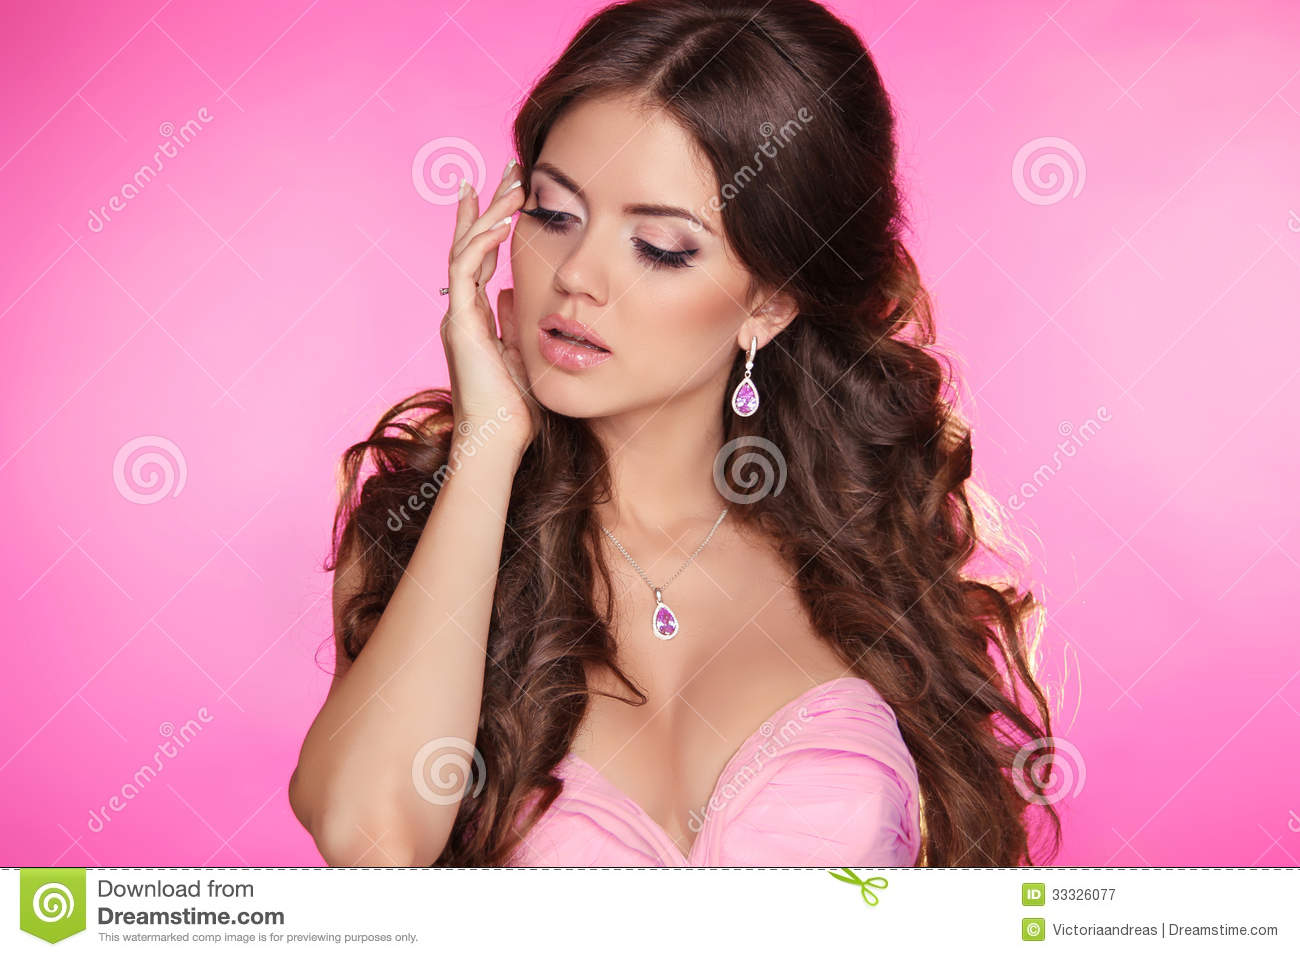 Fashion Beauty Girl Isolated On Pink Background Gorgeous Woman